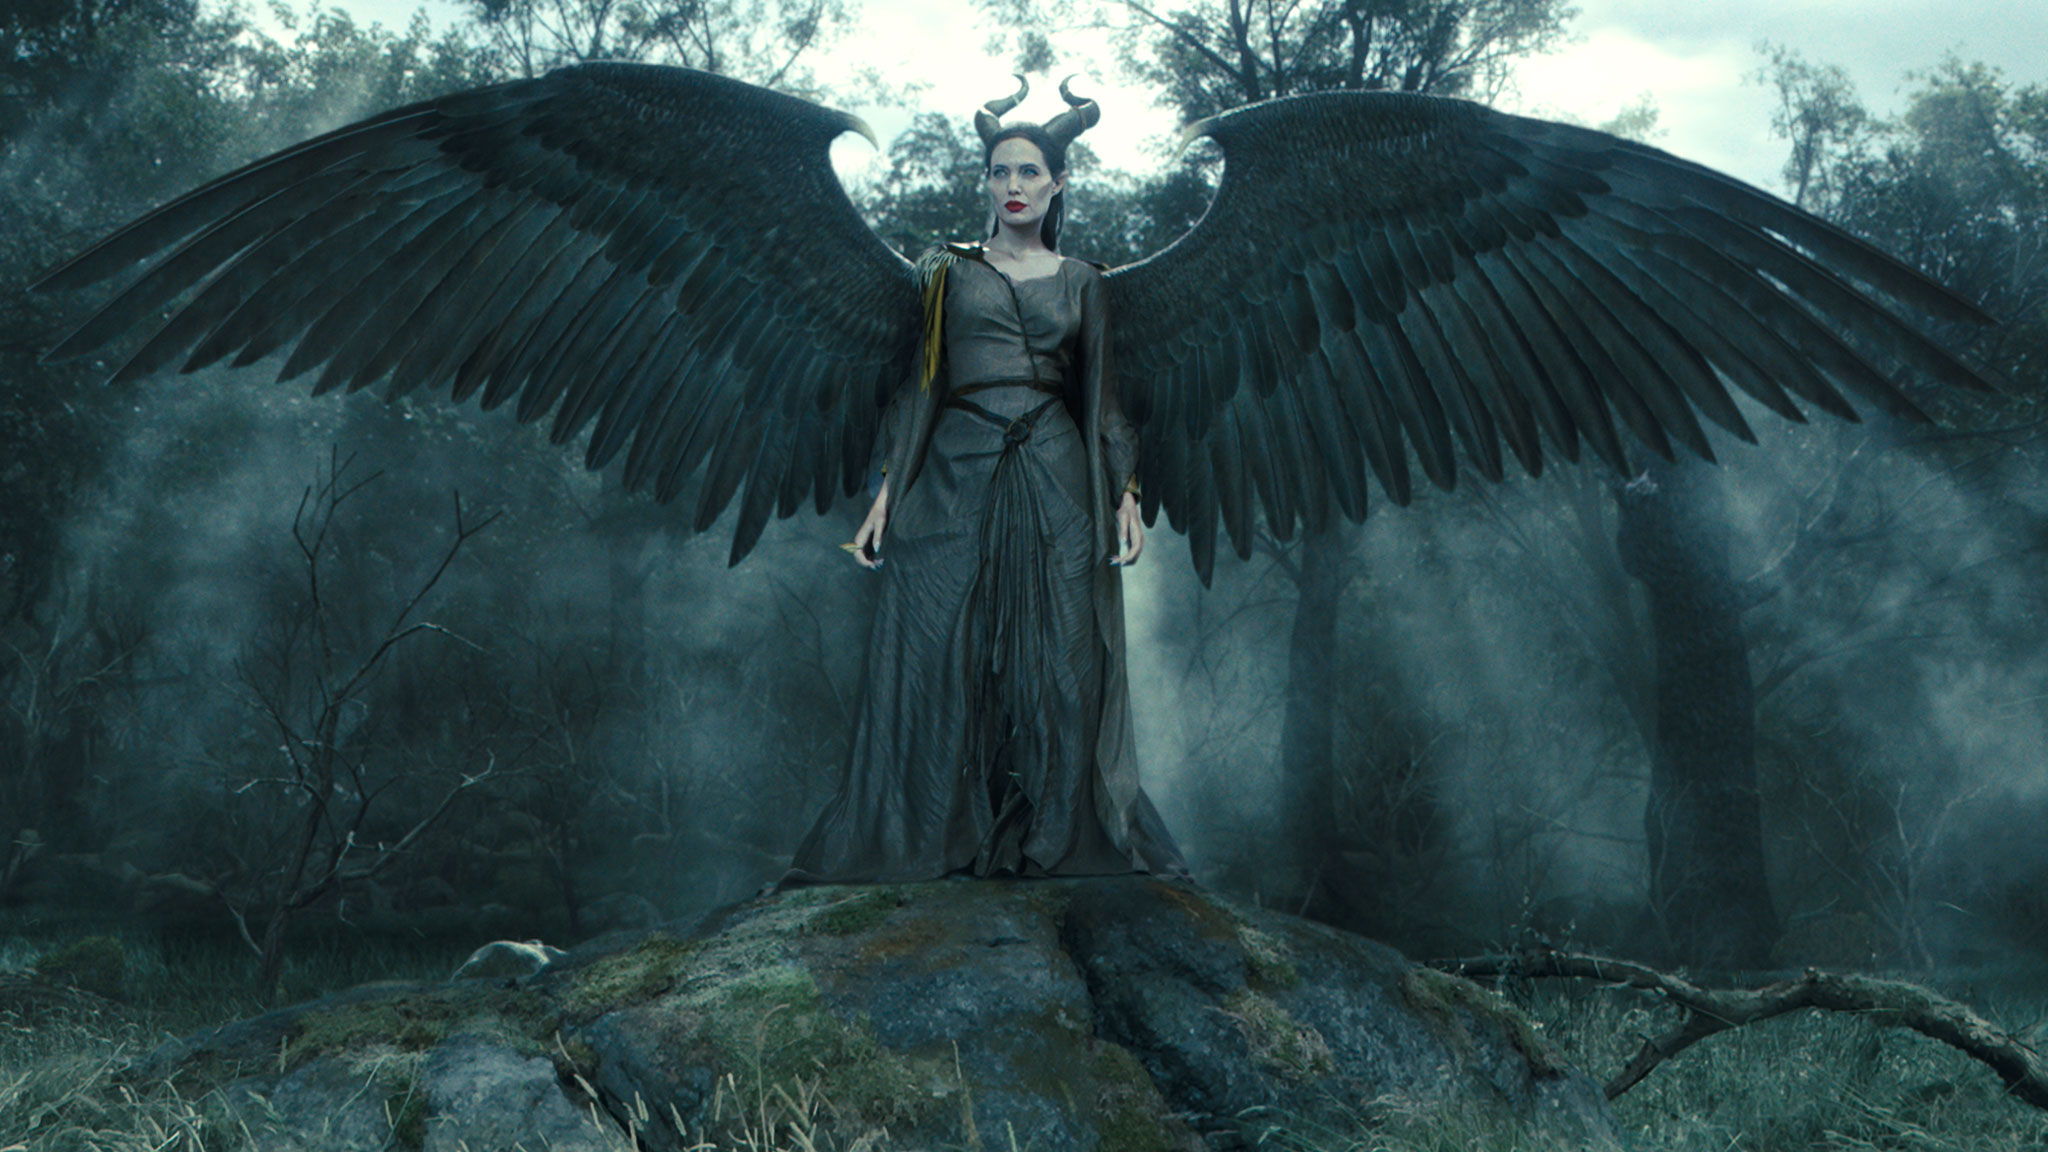 Maleficent Wallpapers - Maleficent's Wings , HD Wallpaper & Backgrounds